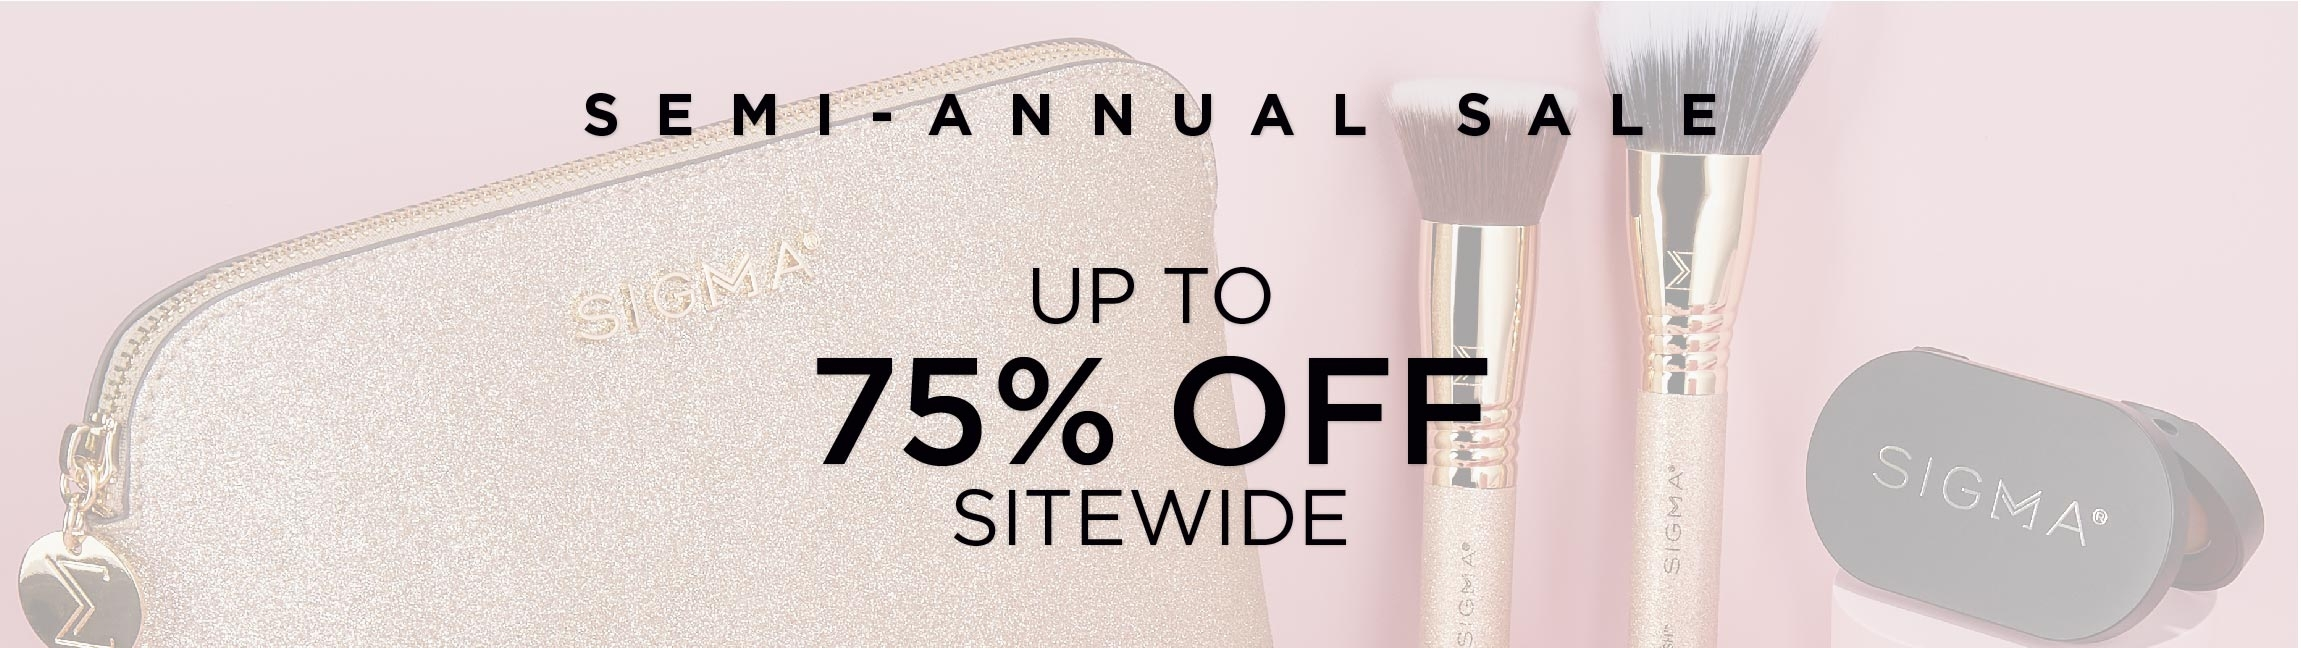 Semi-Annual Sale Up To 75% Off Sitewide